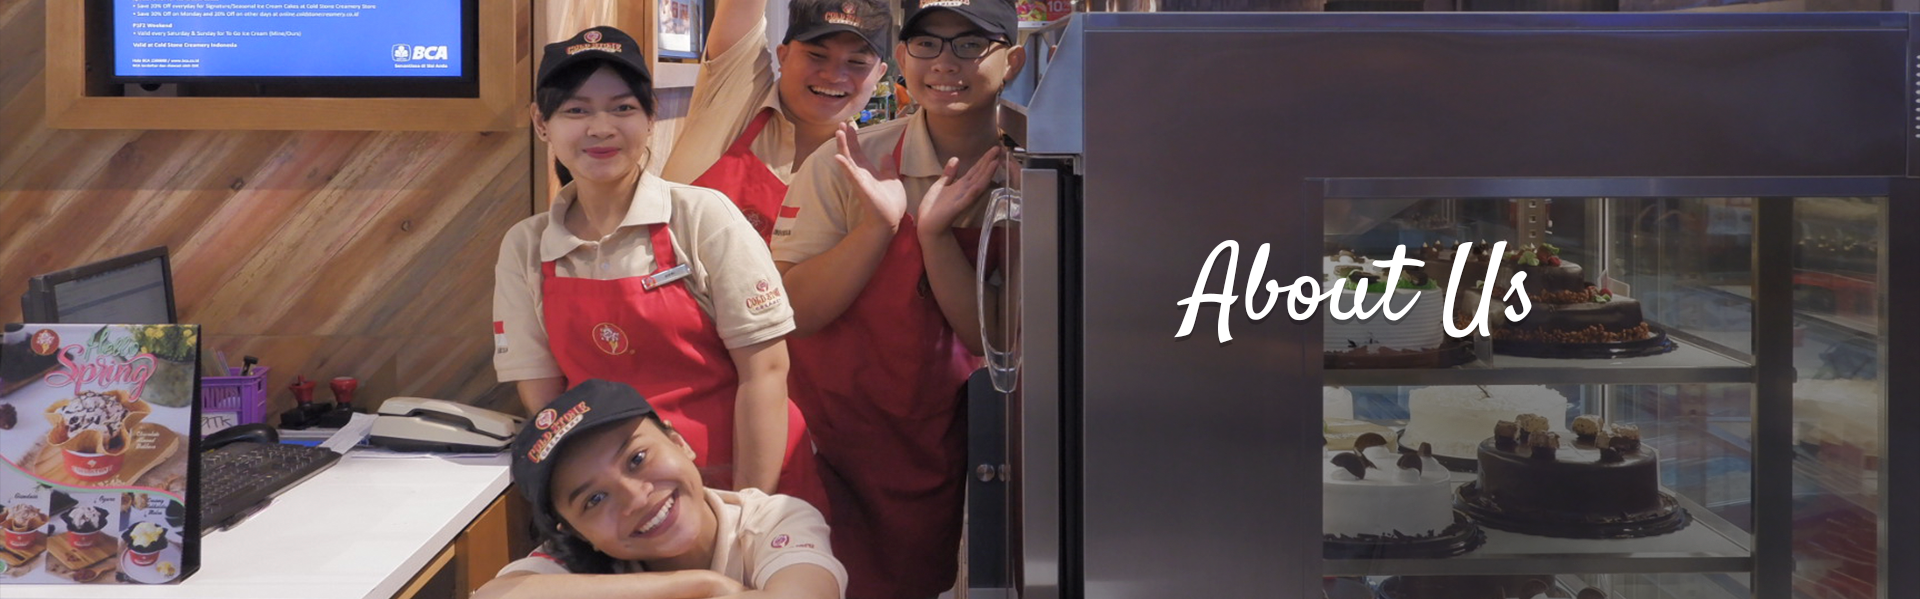 Cold Stone Creamery Indonesia About Us